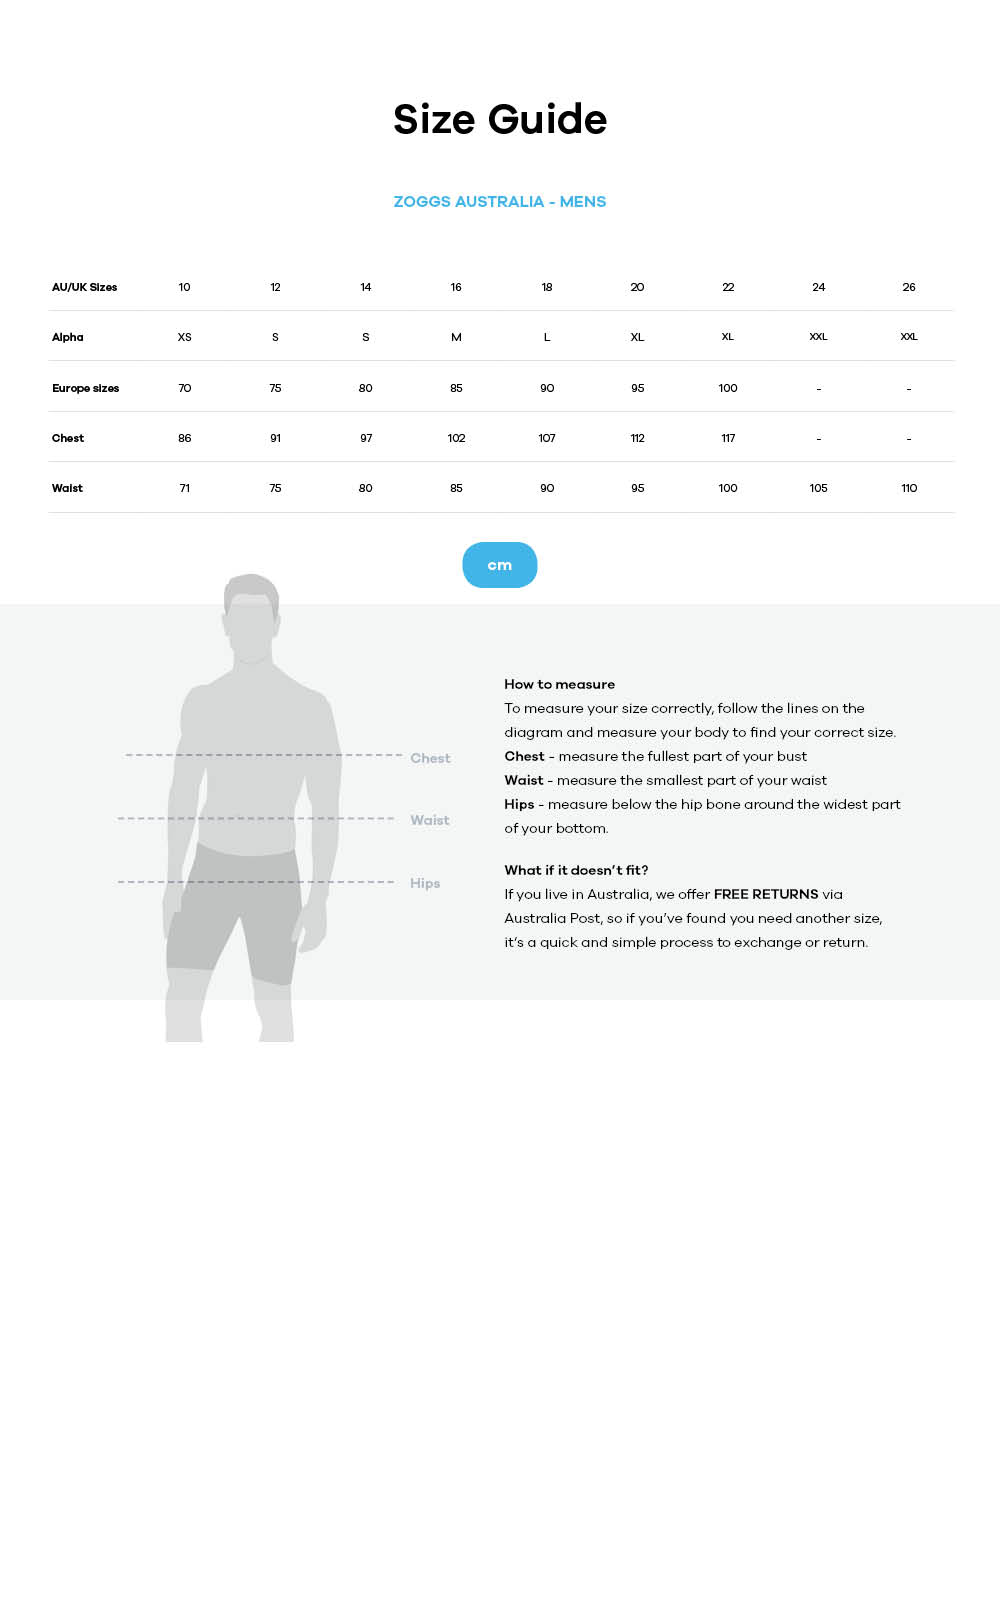 Zoggs size guide